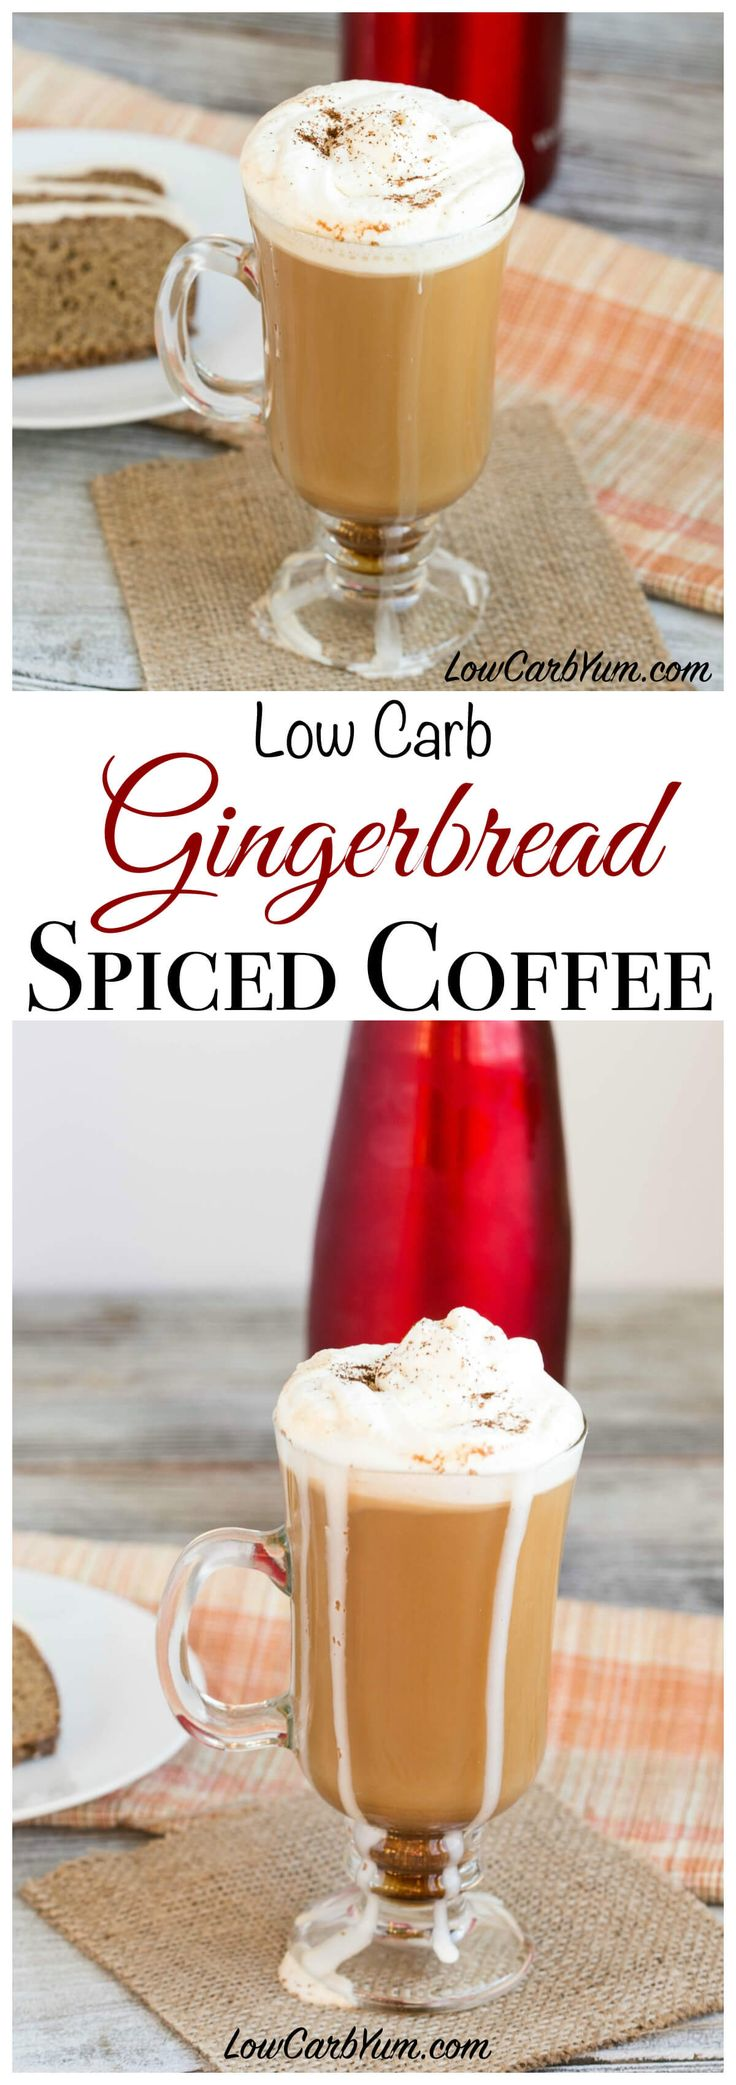 A low carb gingerbread spice coffee recipe that is a perfect beverage to enjoy during the holiday festivities. It adds a nice touch of spice to coffee.